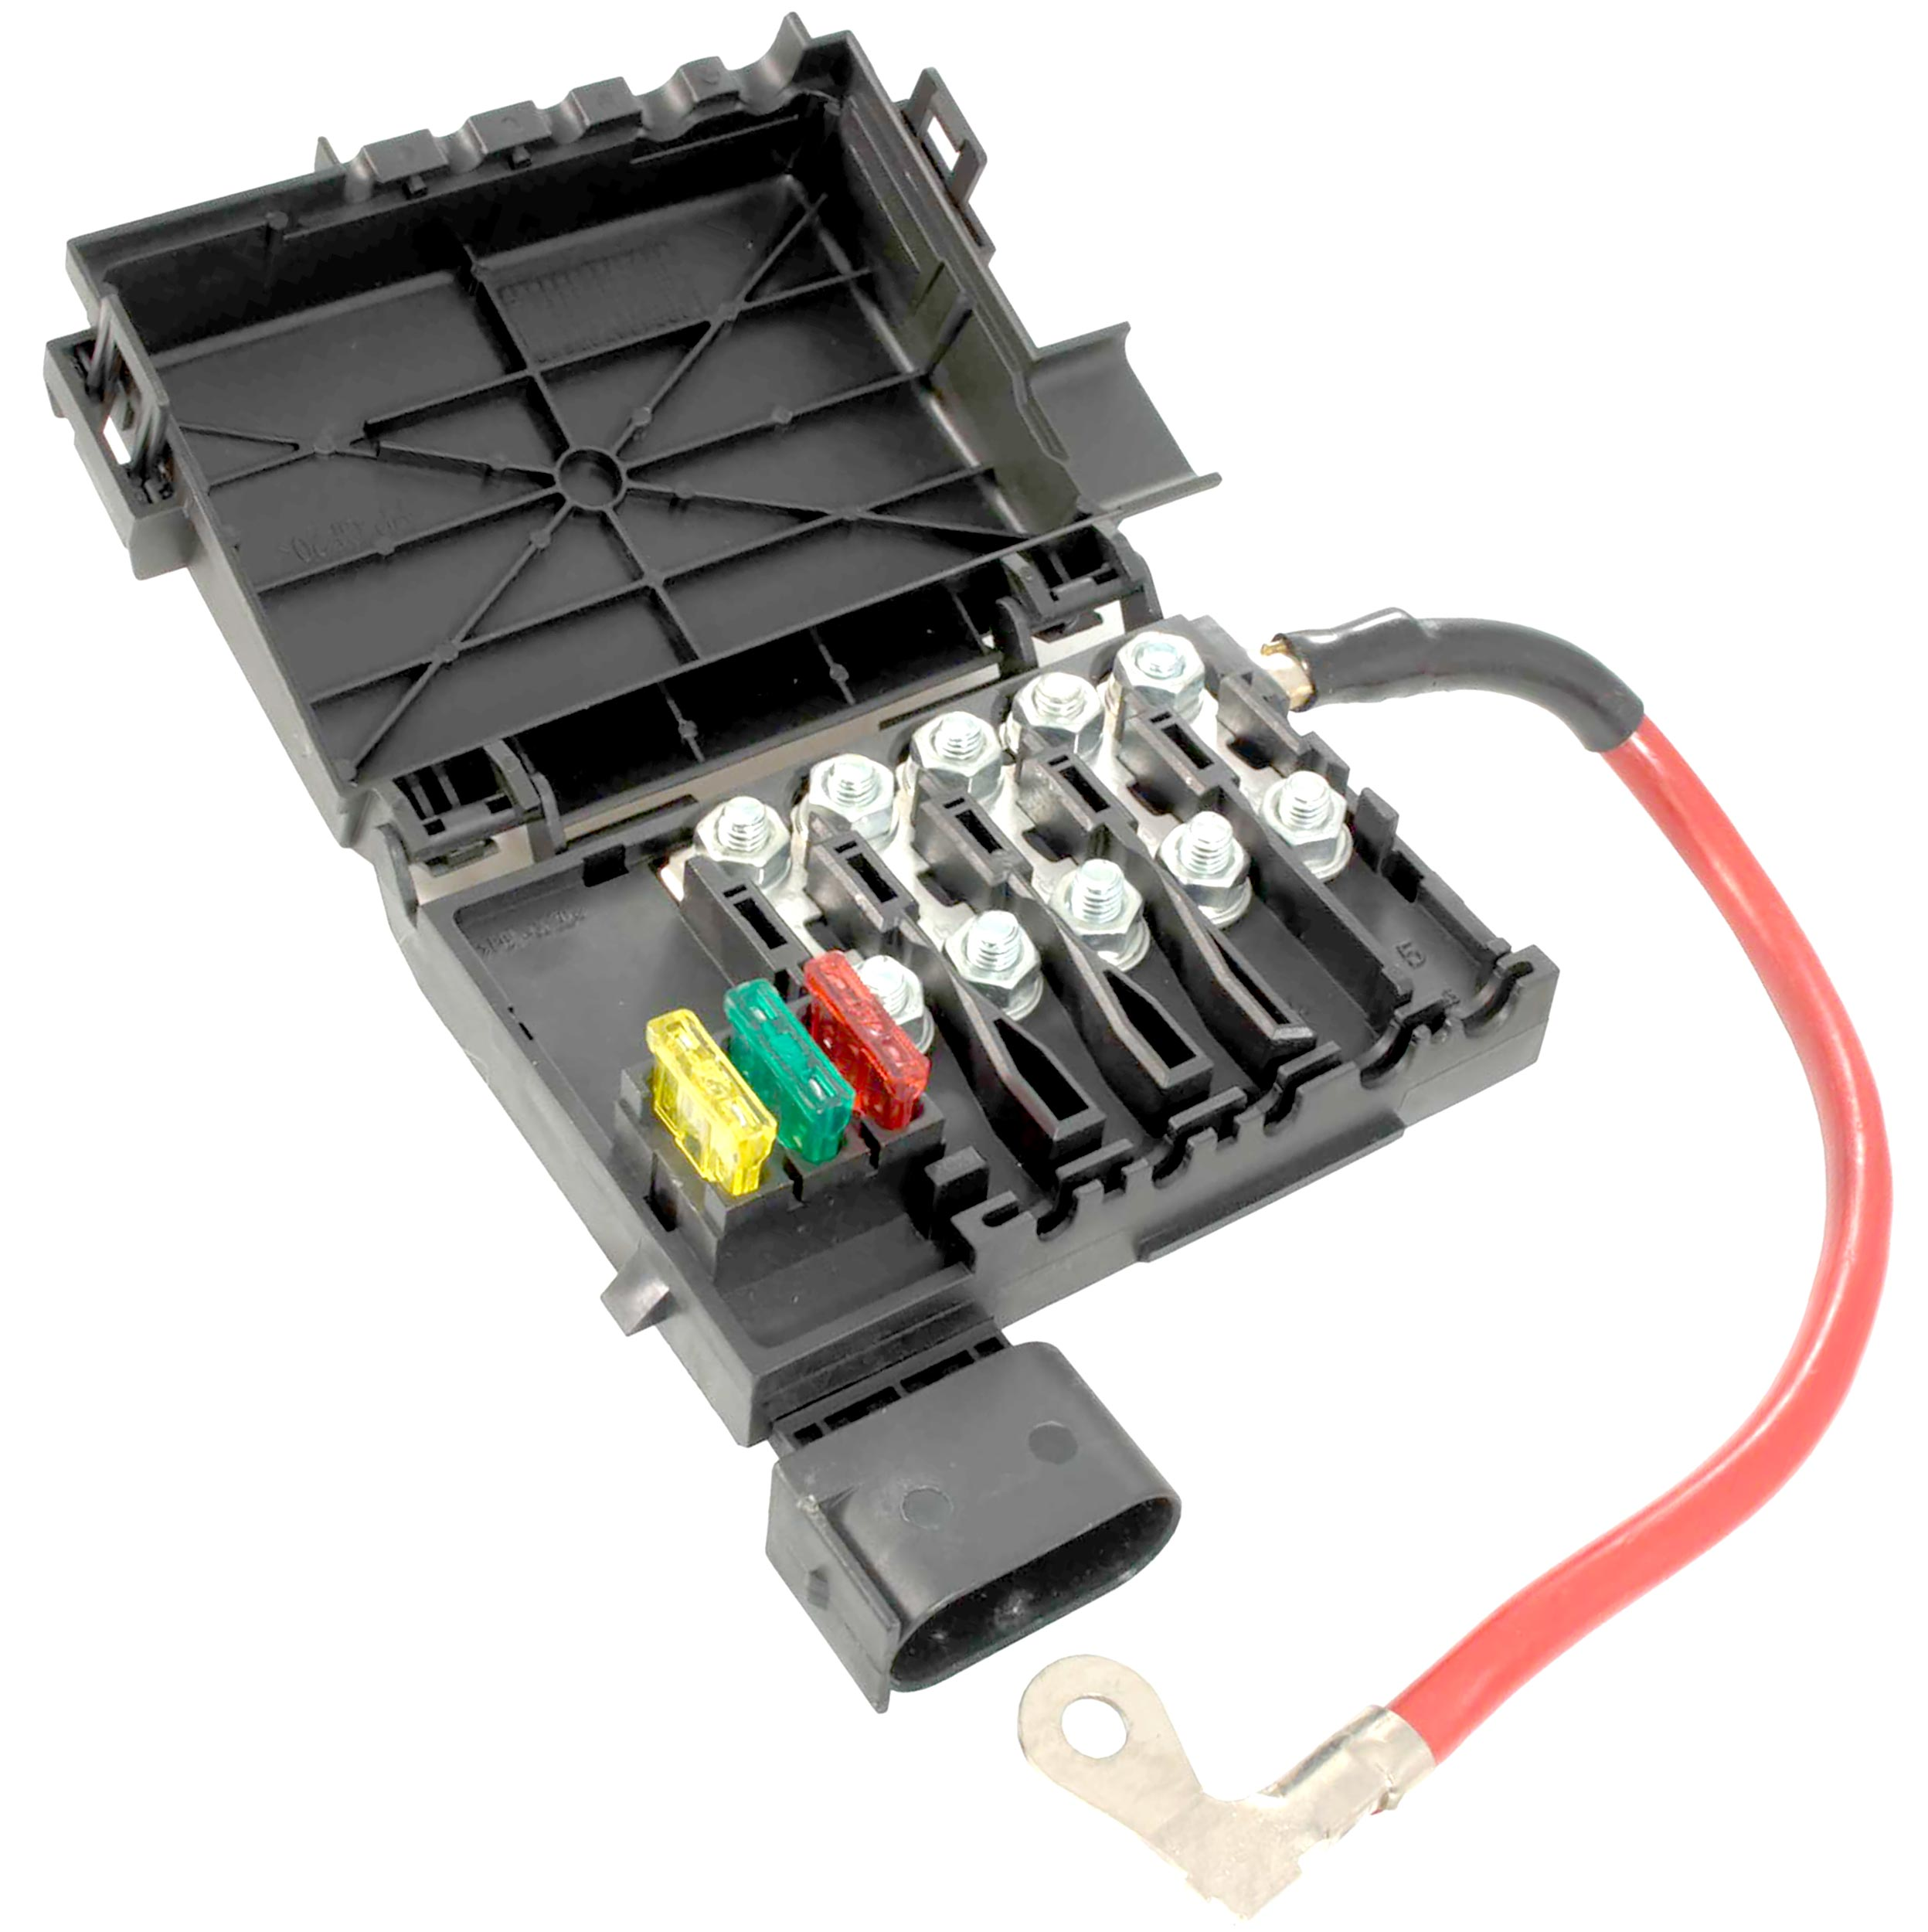 50 amp fuse melted box apdty 035792    fuse       box    assembly battery mounted with new  apdty 035792    fuse       box    assembly battery mounted with new